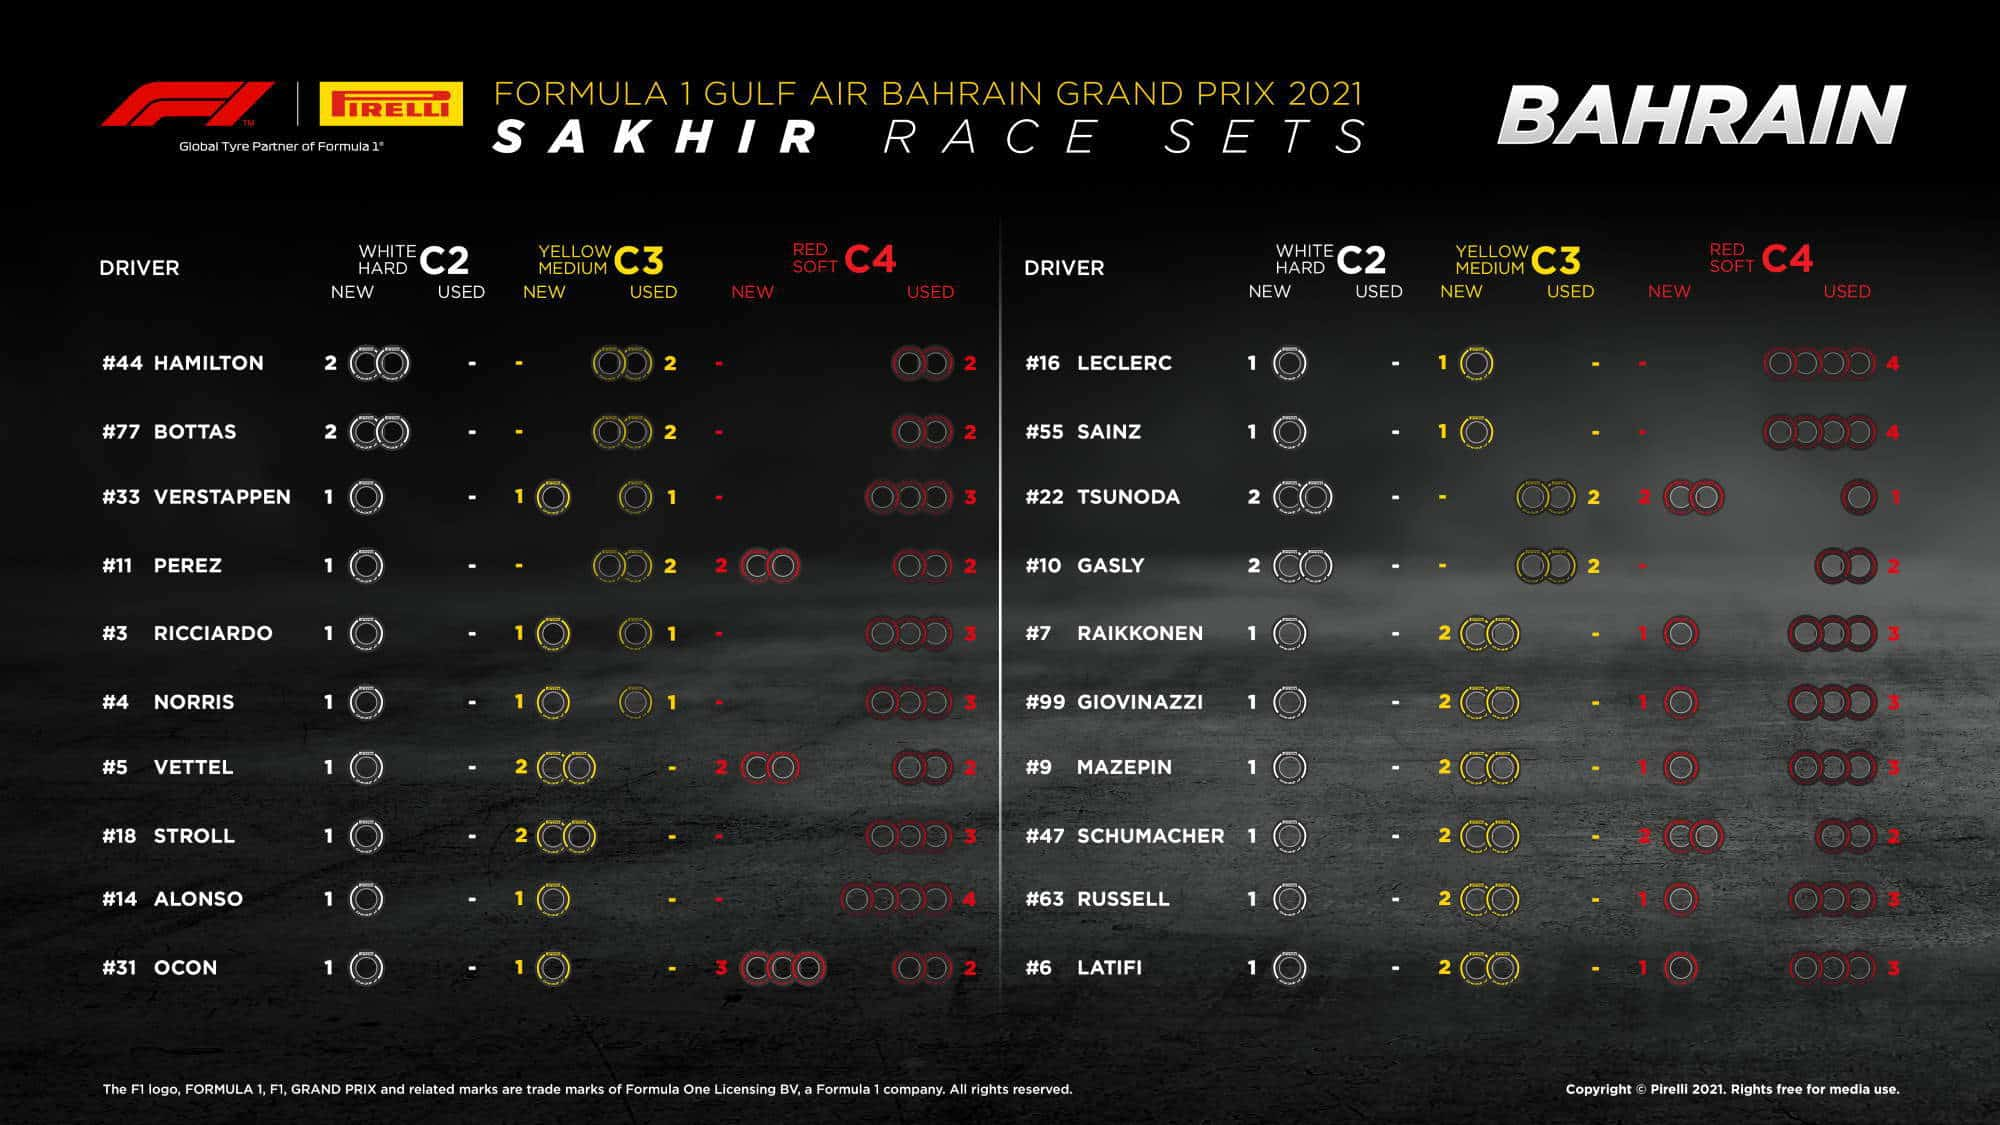 formula1 gulf air bahrain grand prix 2021-tyre sets available for the race Photo Pirelli